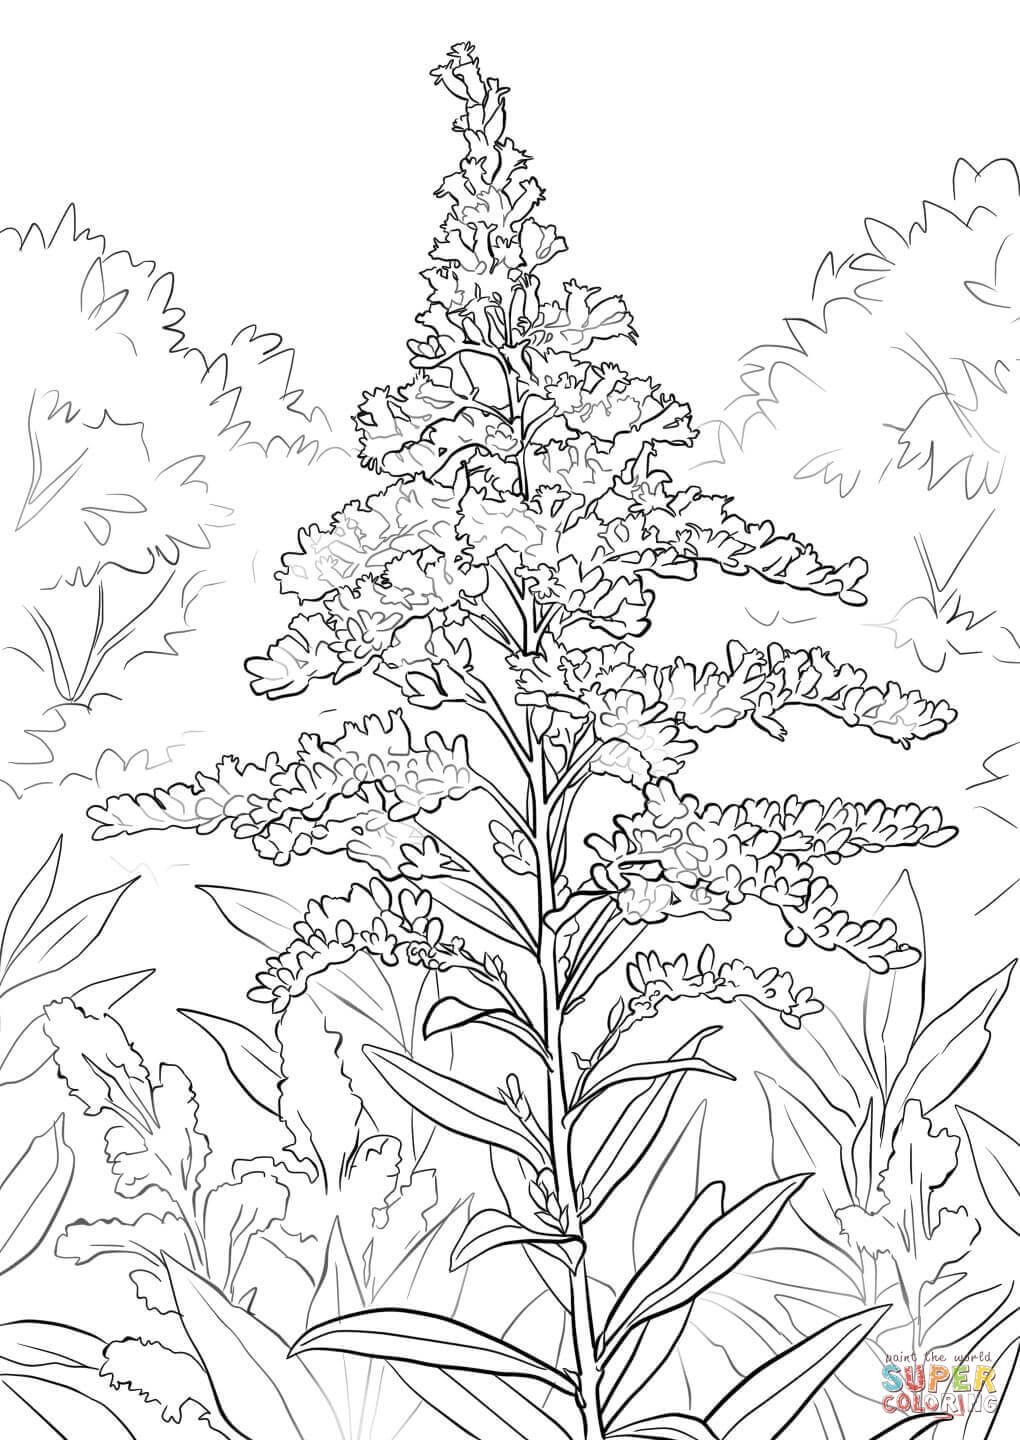 giant-goldenrod-coloring-page.jpg 1,020×1,440 pixels | Tattoo Ideas ...